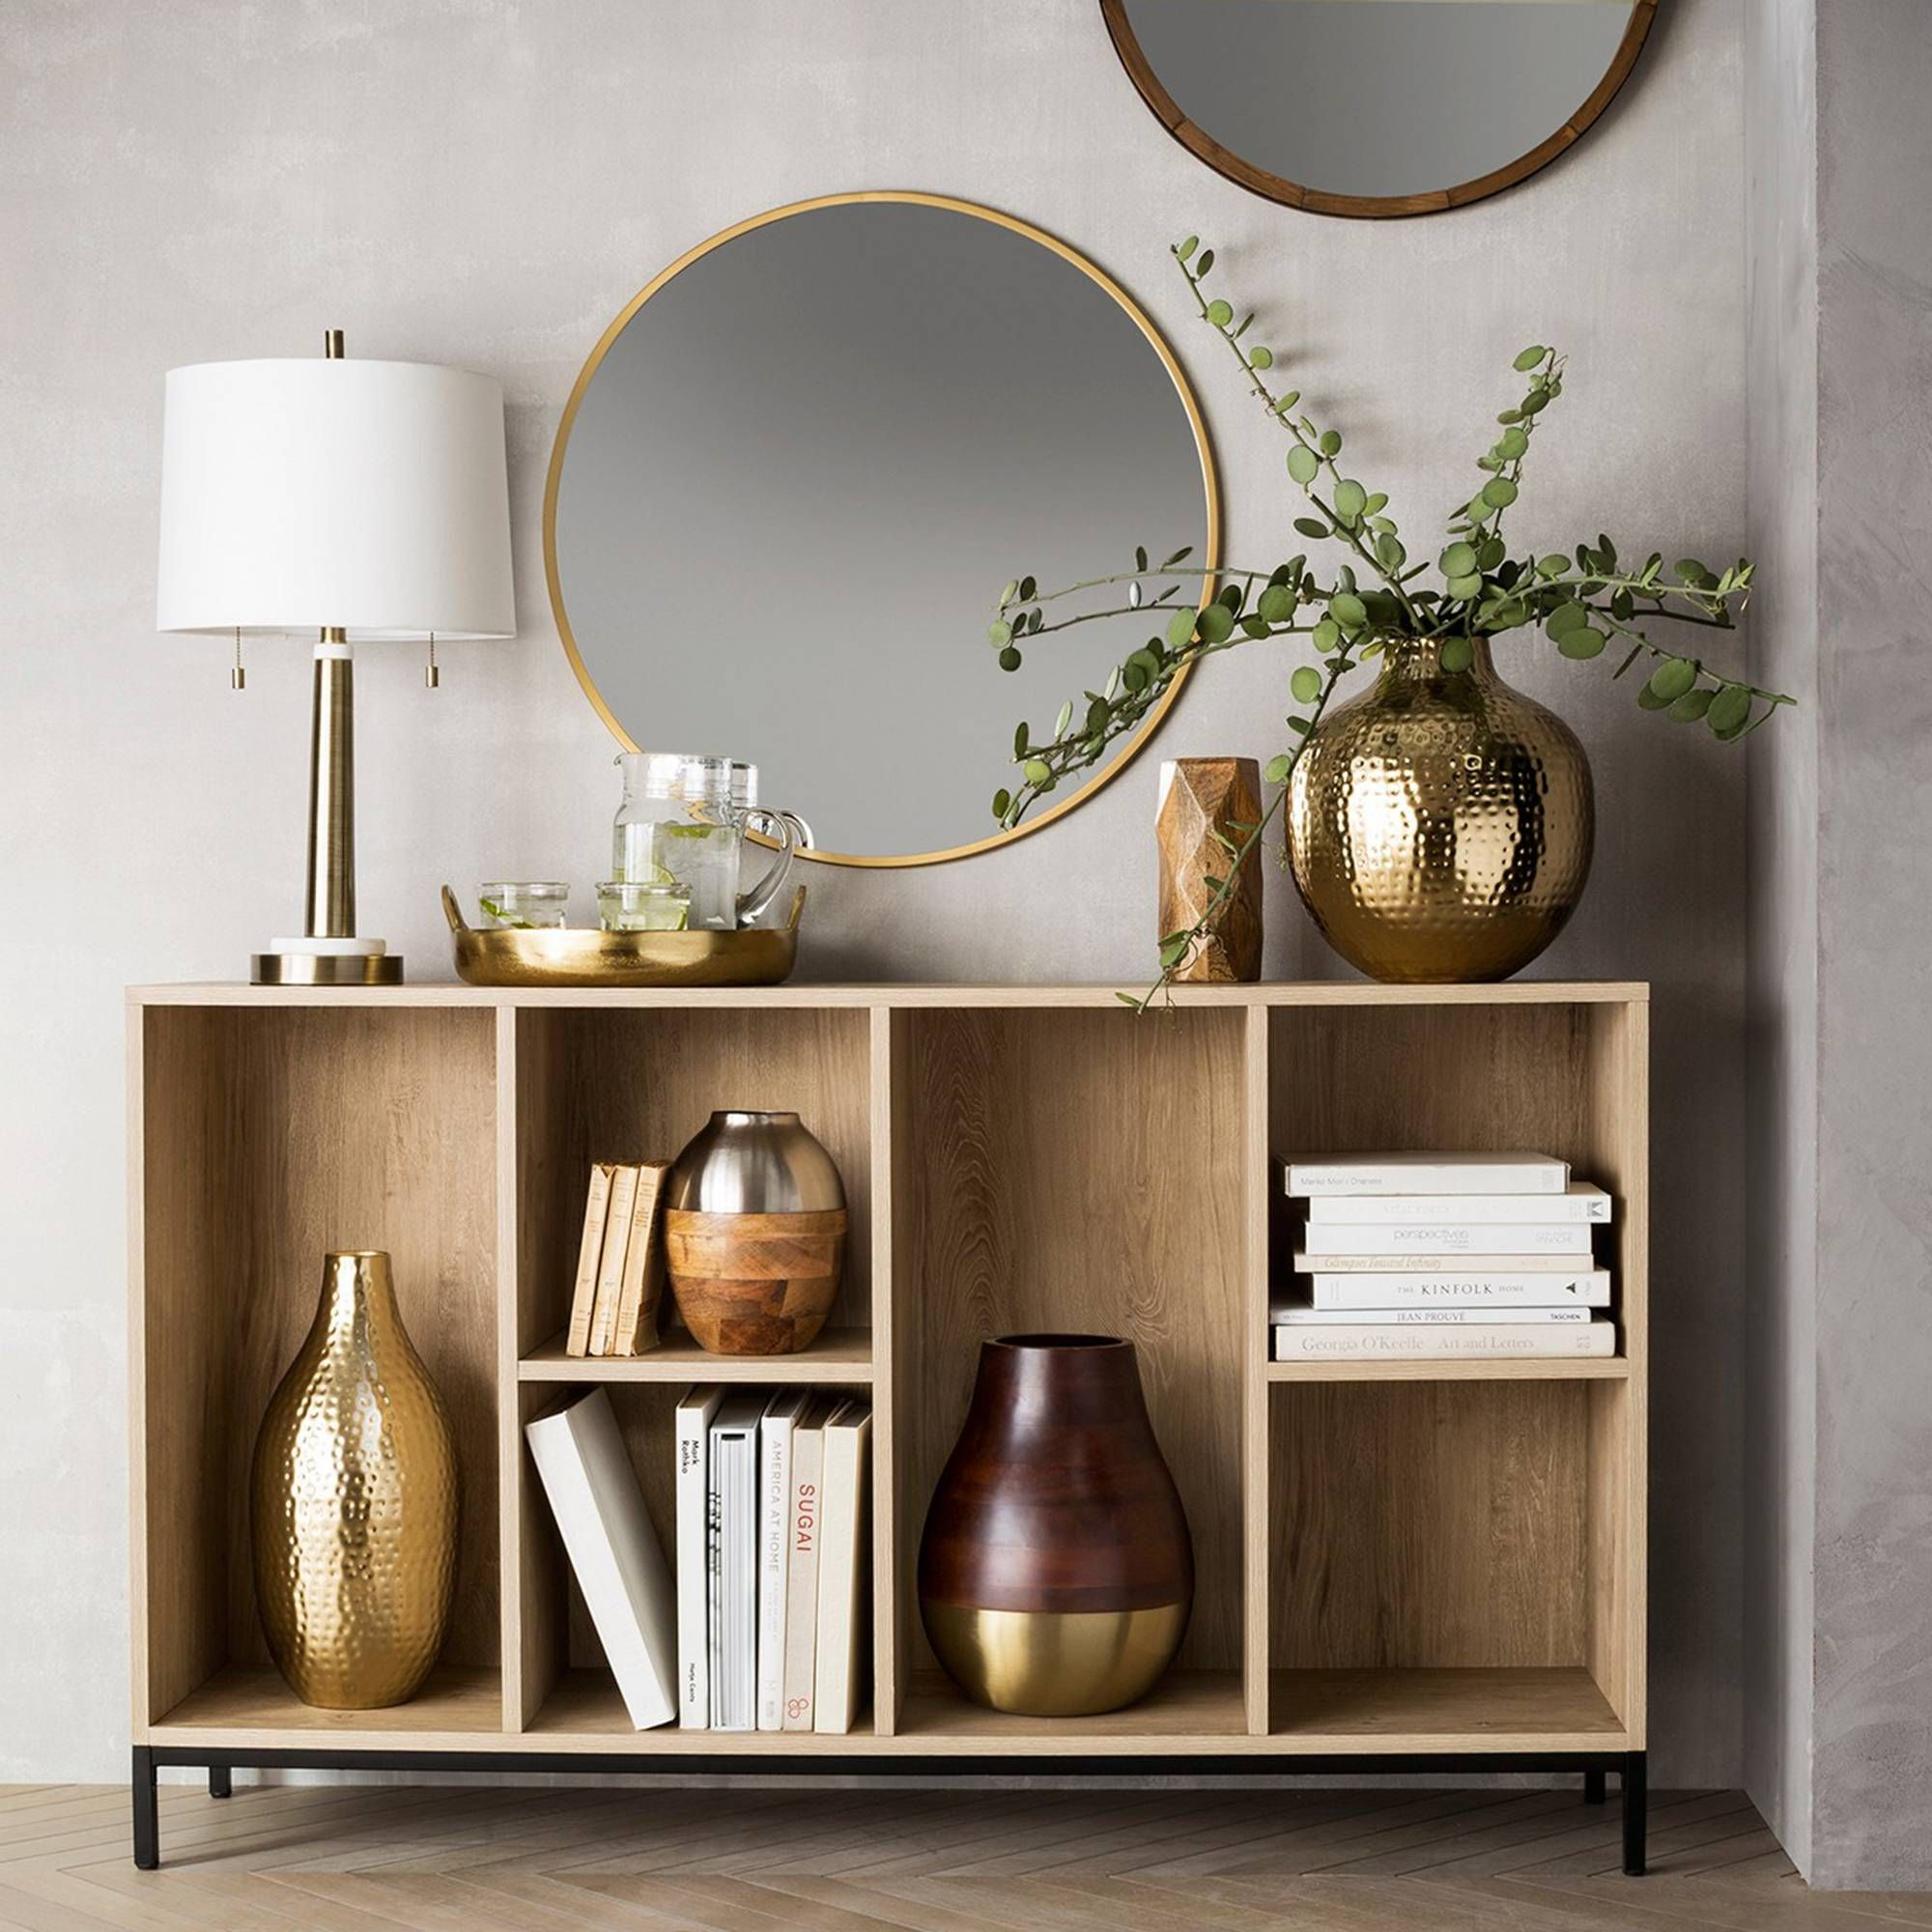 Target Project 62 Decor Wood Wall Mirror Cheap Home Decor